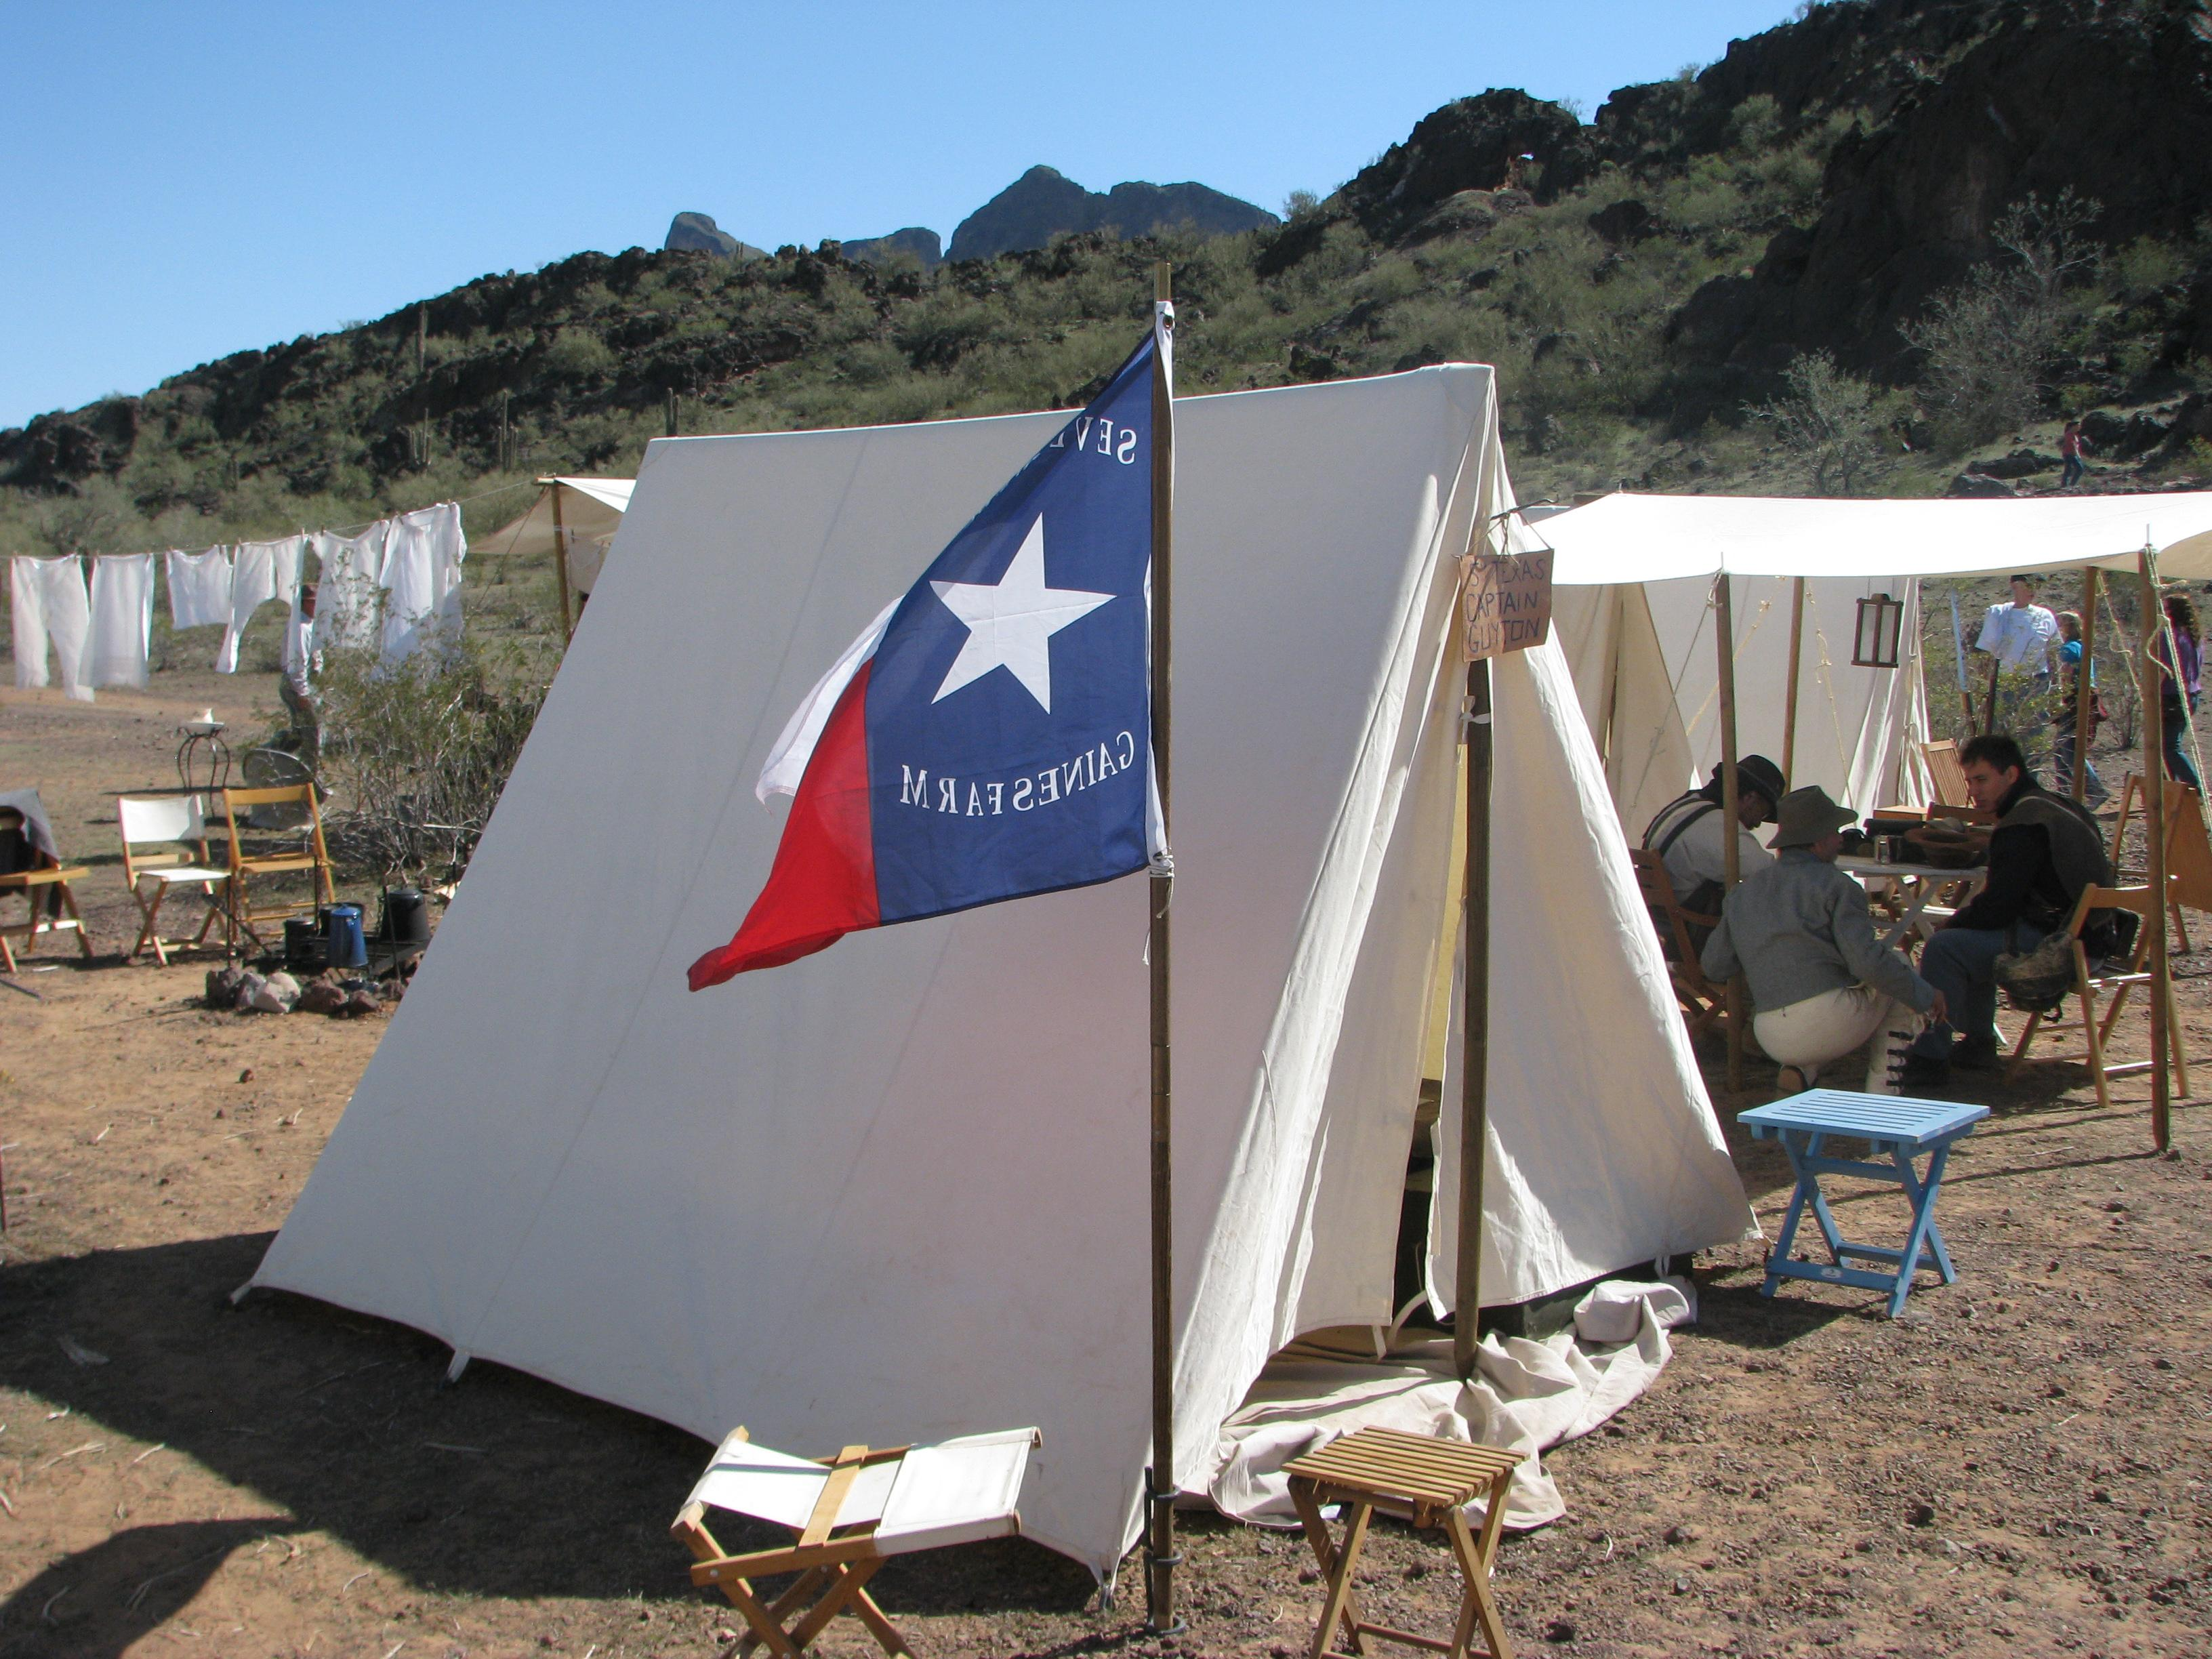 Rendition Original | Texas tent at Picacho re-enactment